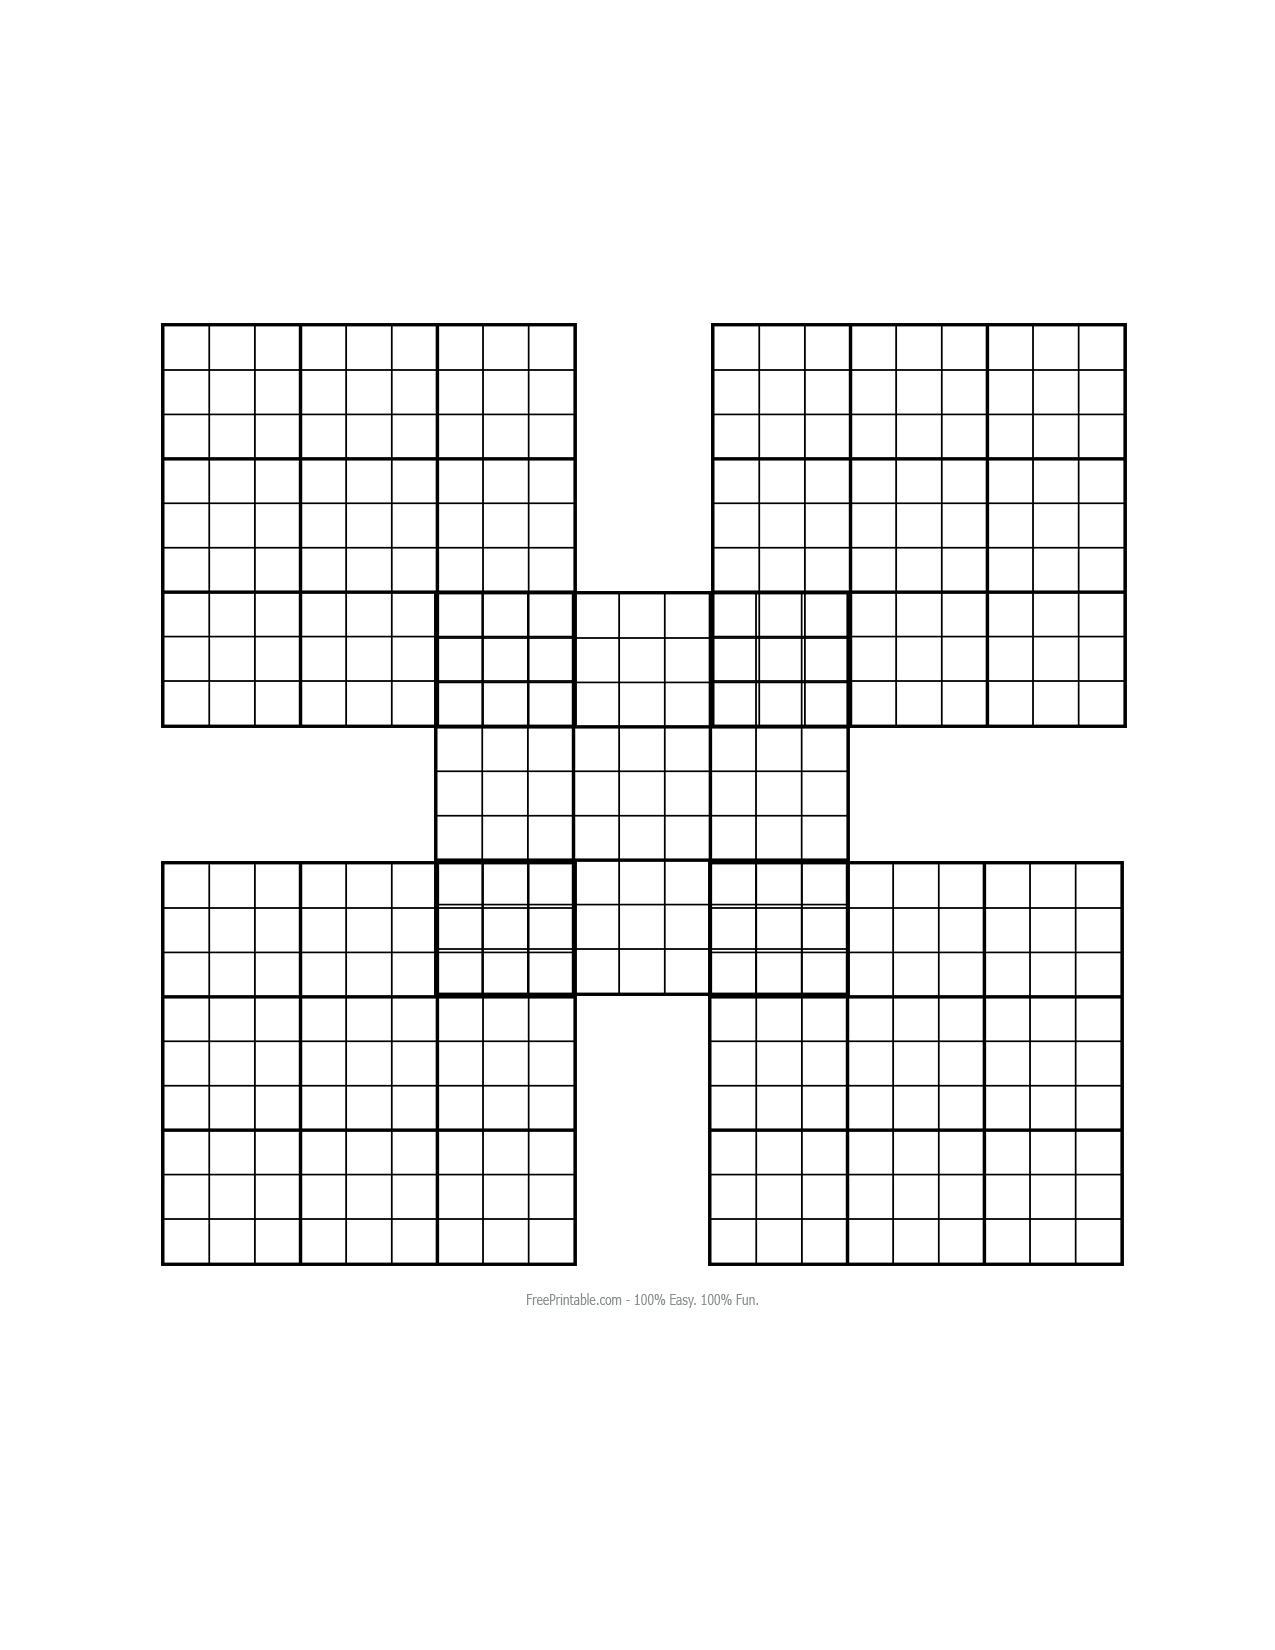 Worksheets Sudoku Worksheets sudoku grid solver daway dabrowa co solver